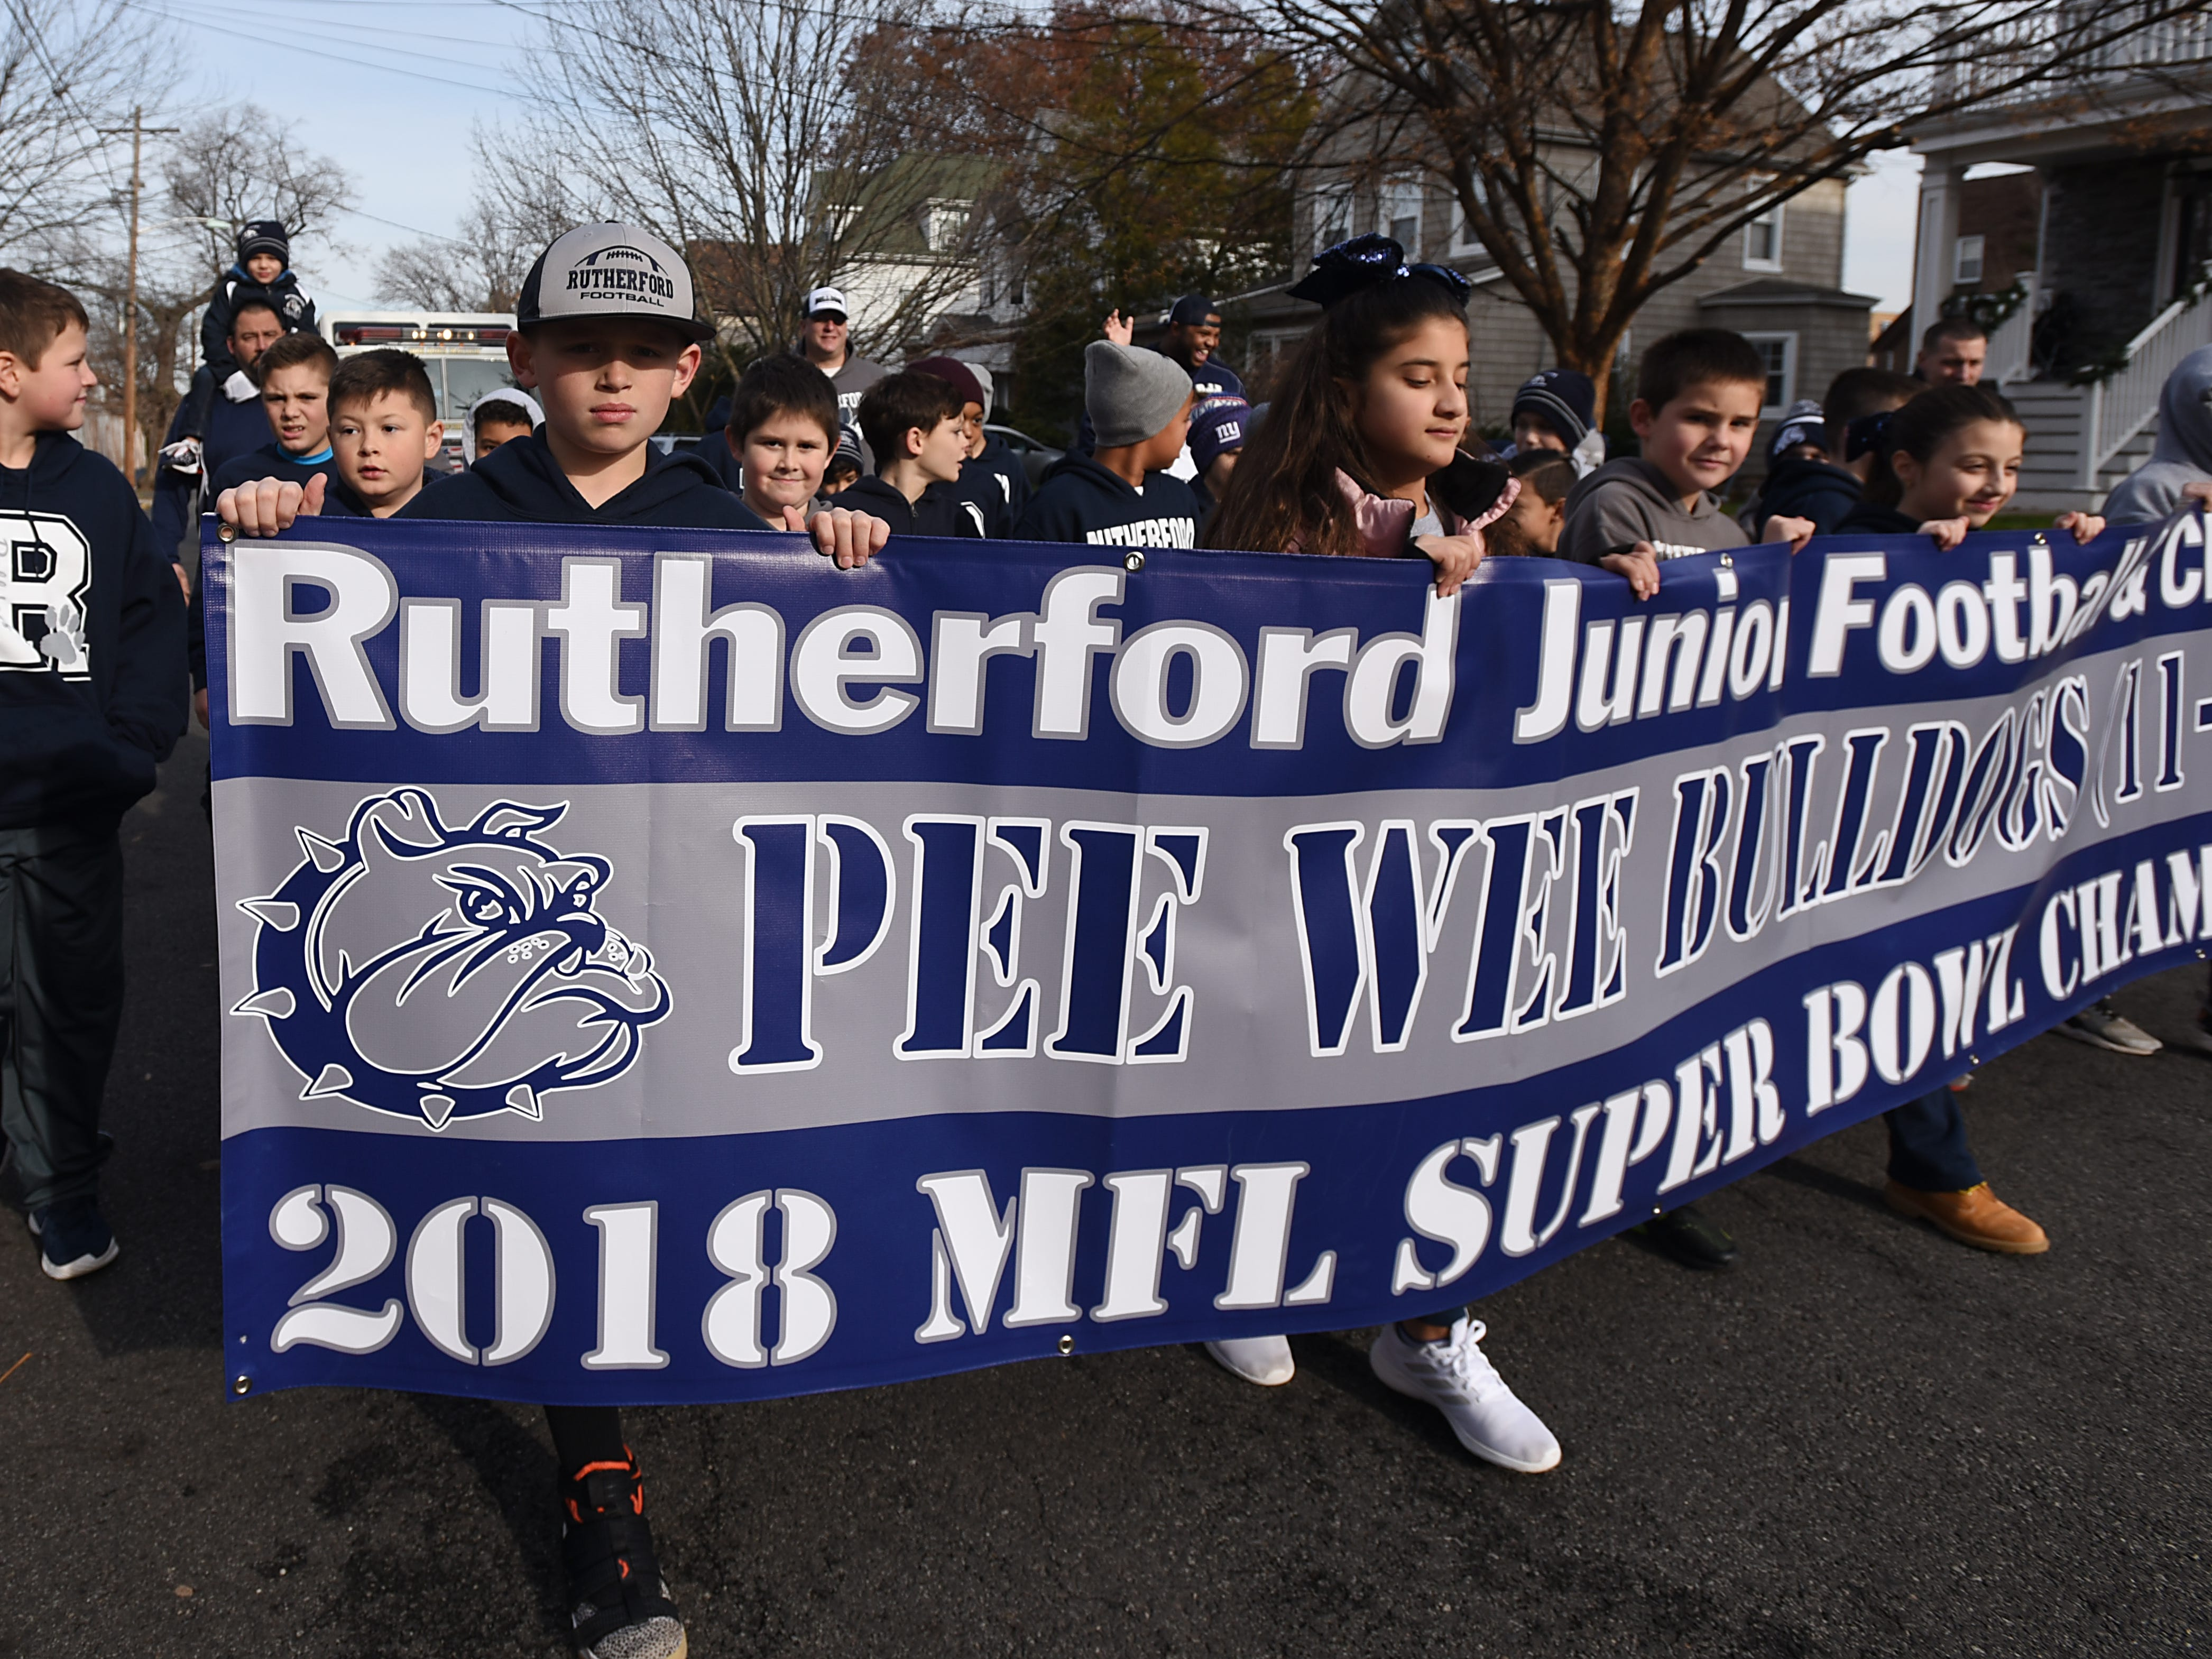 Cheerleaders and football players hold a banner during the Rutherford Football parade in Rutherford on Saturday December 1, 2018.